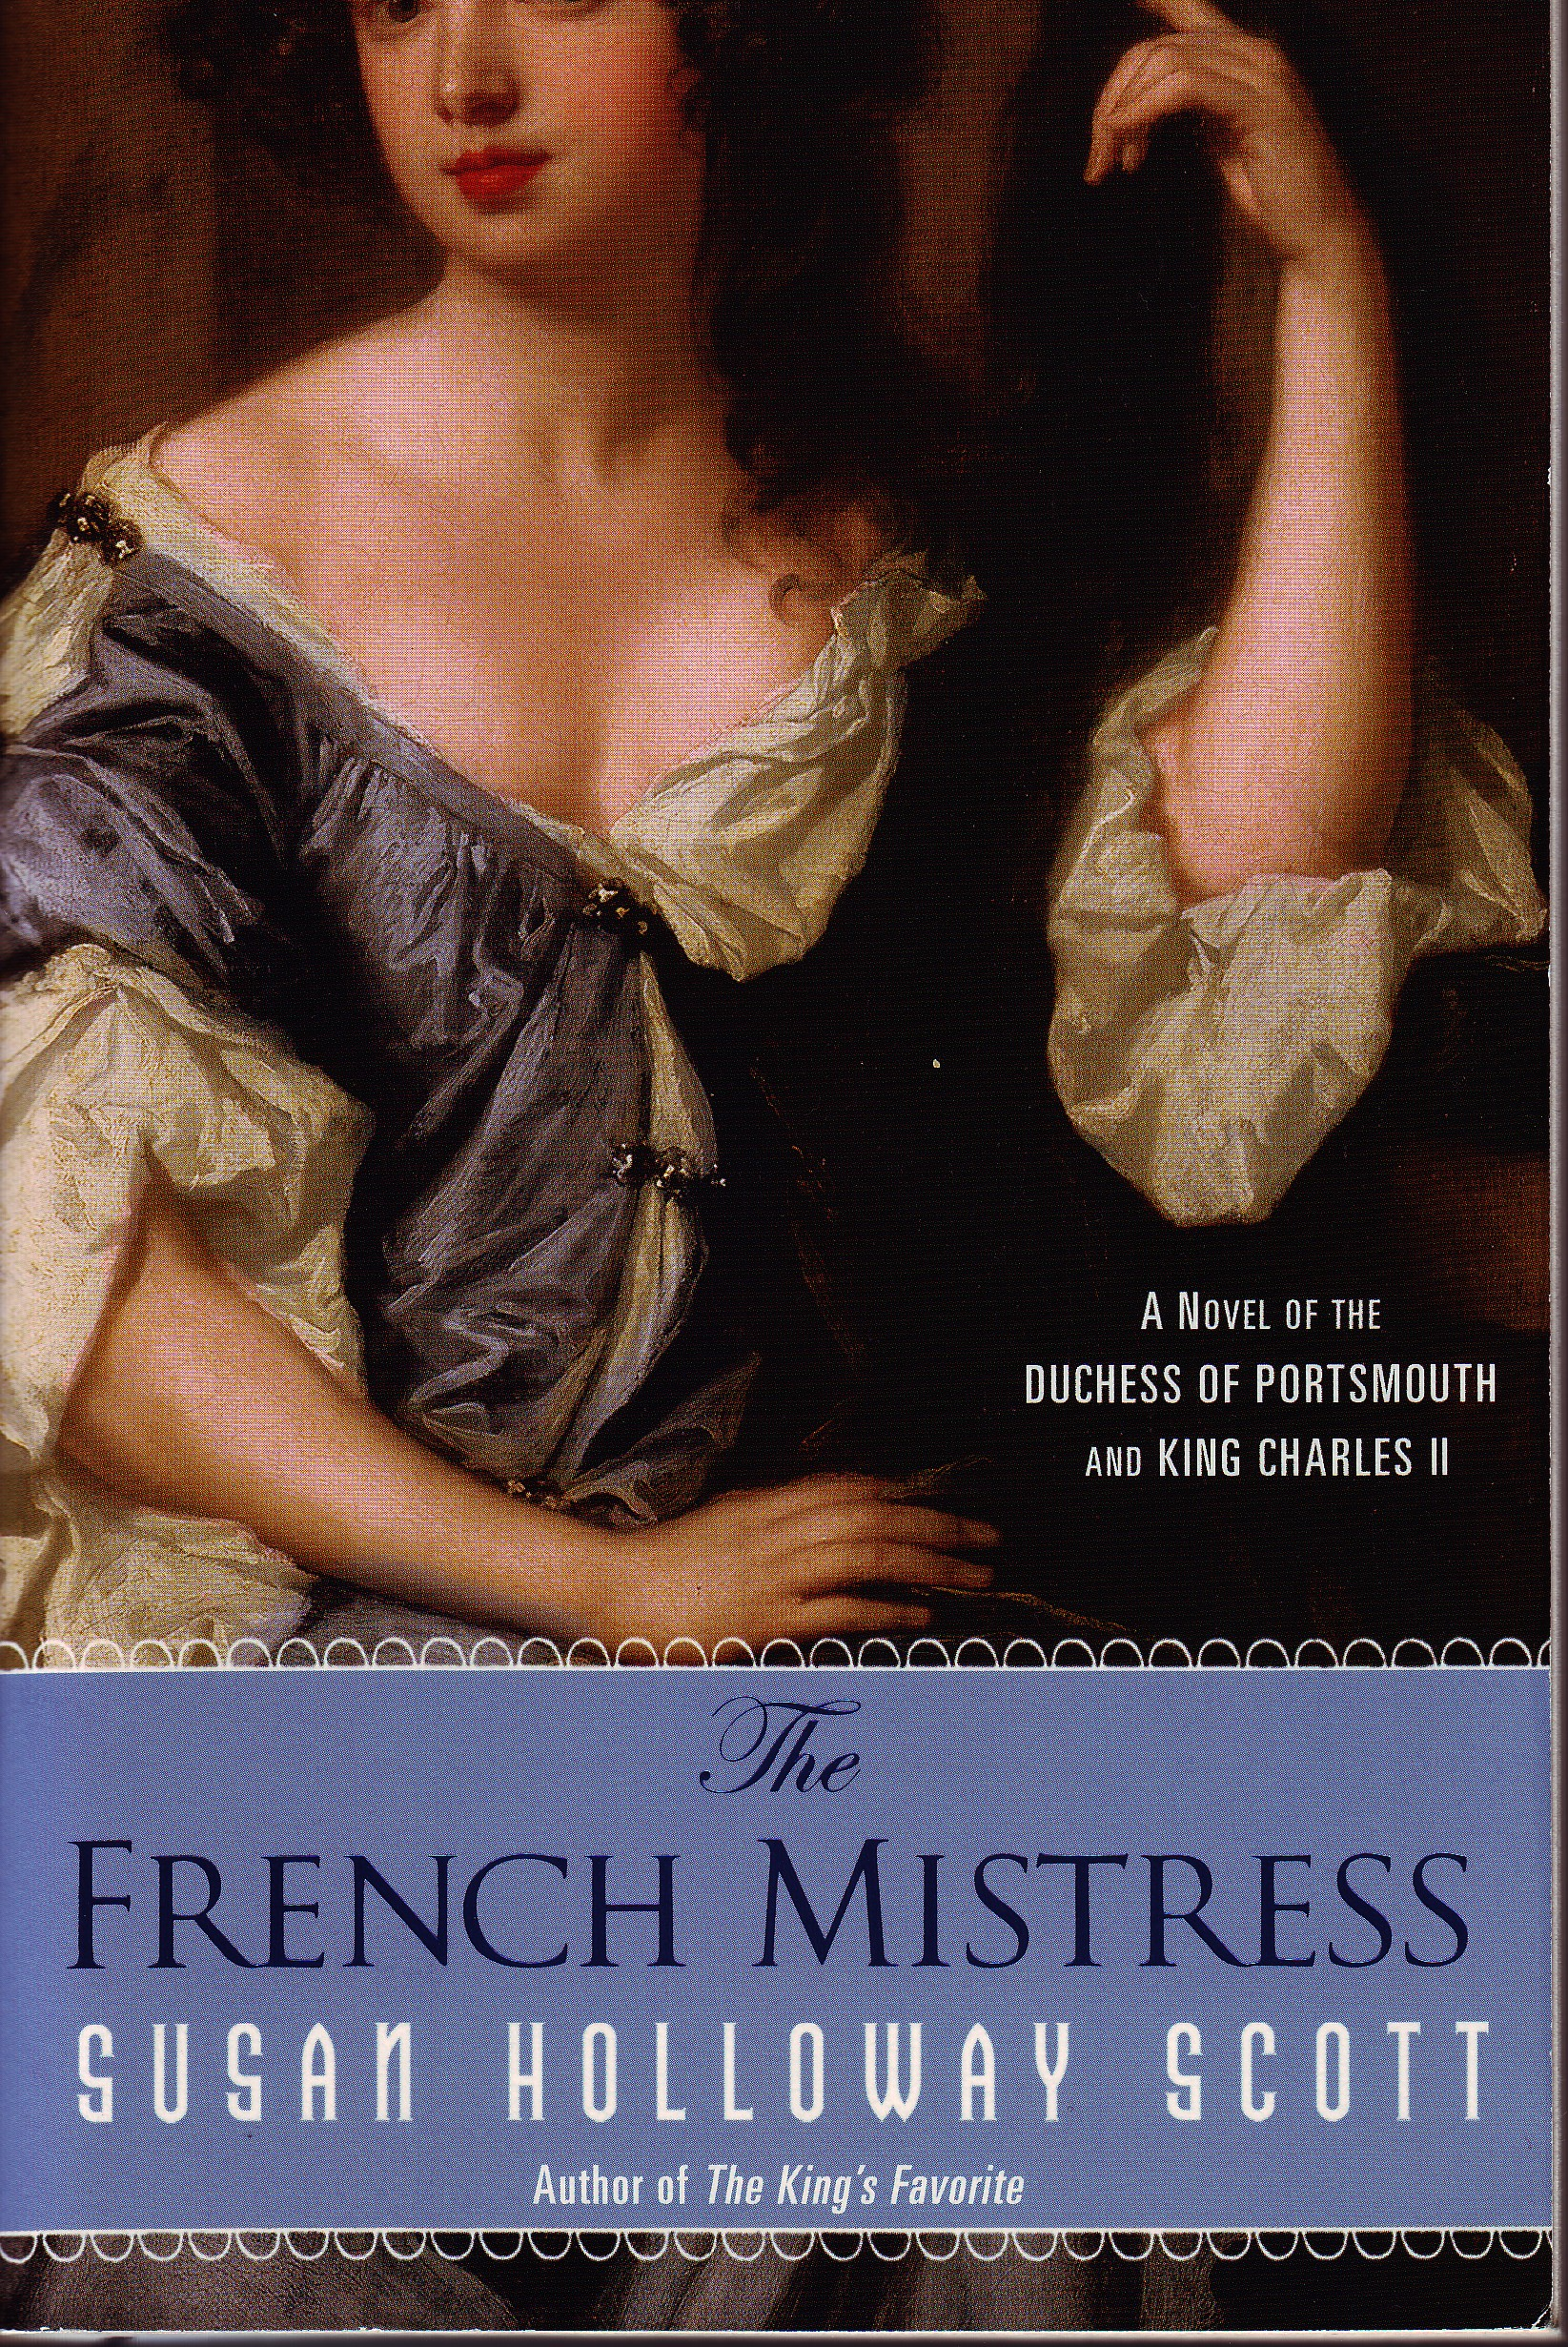 FrenchMistress